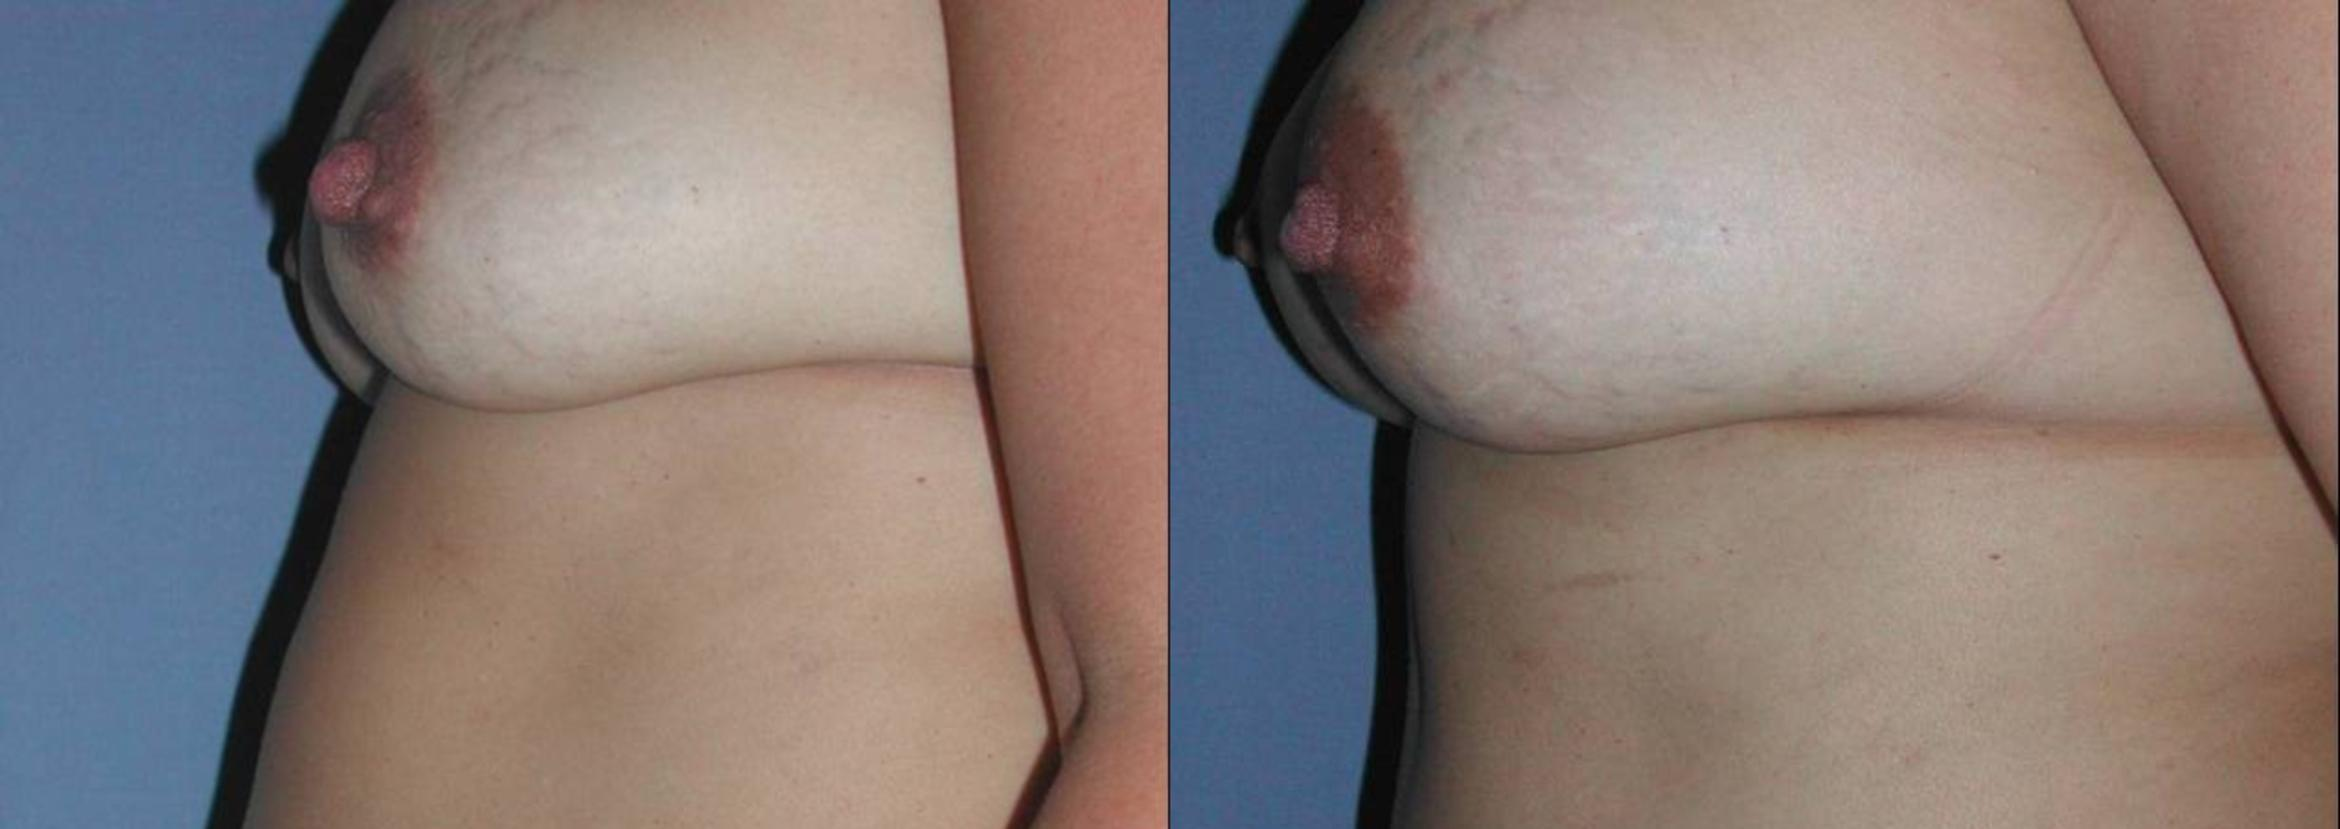 Breast Augmentation Before & After Photo | San Francisco, CA | Kaiser Permanente Cosmetic Services